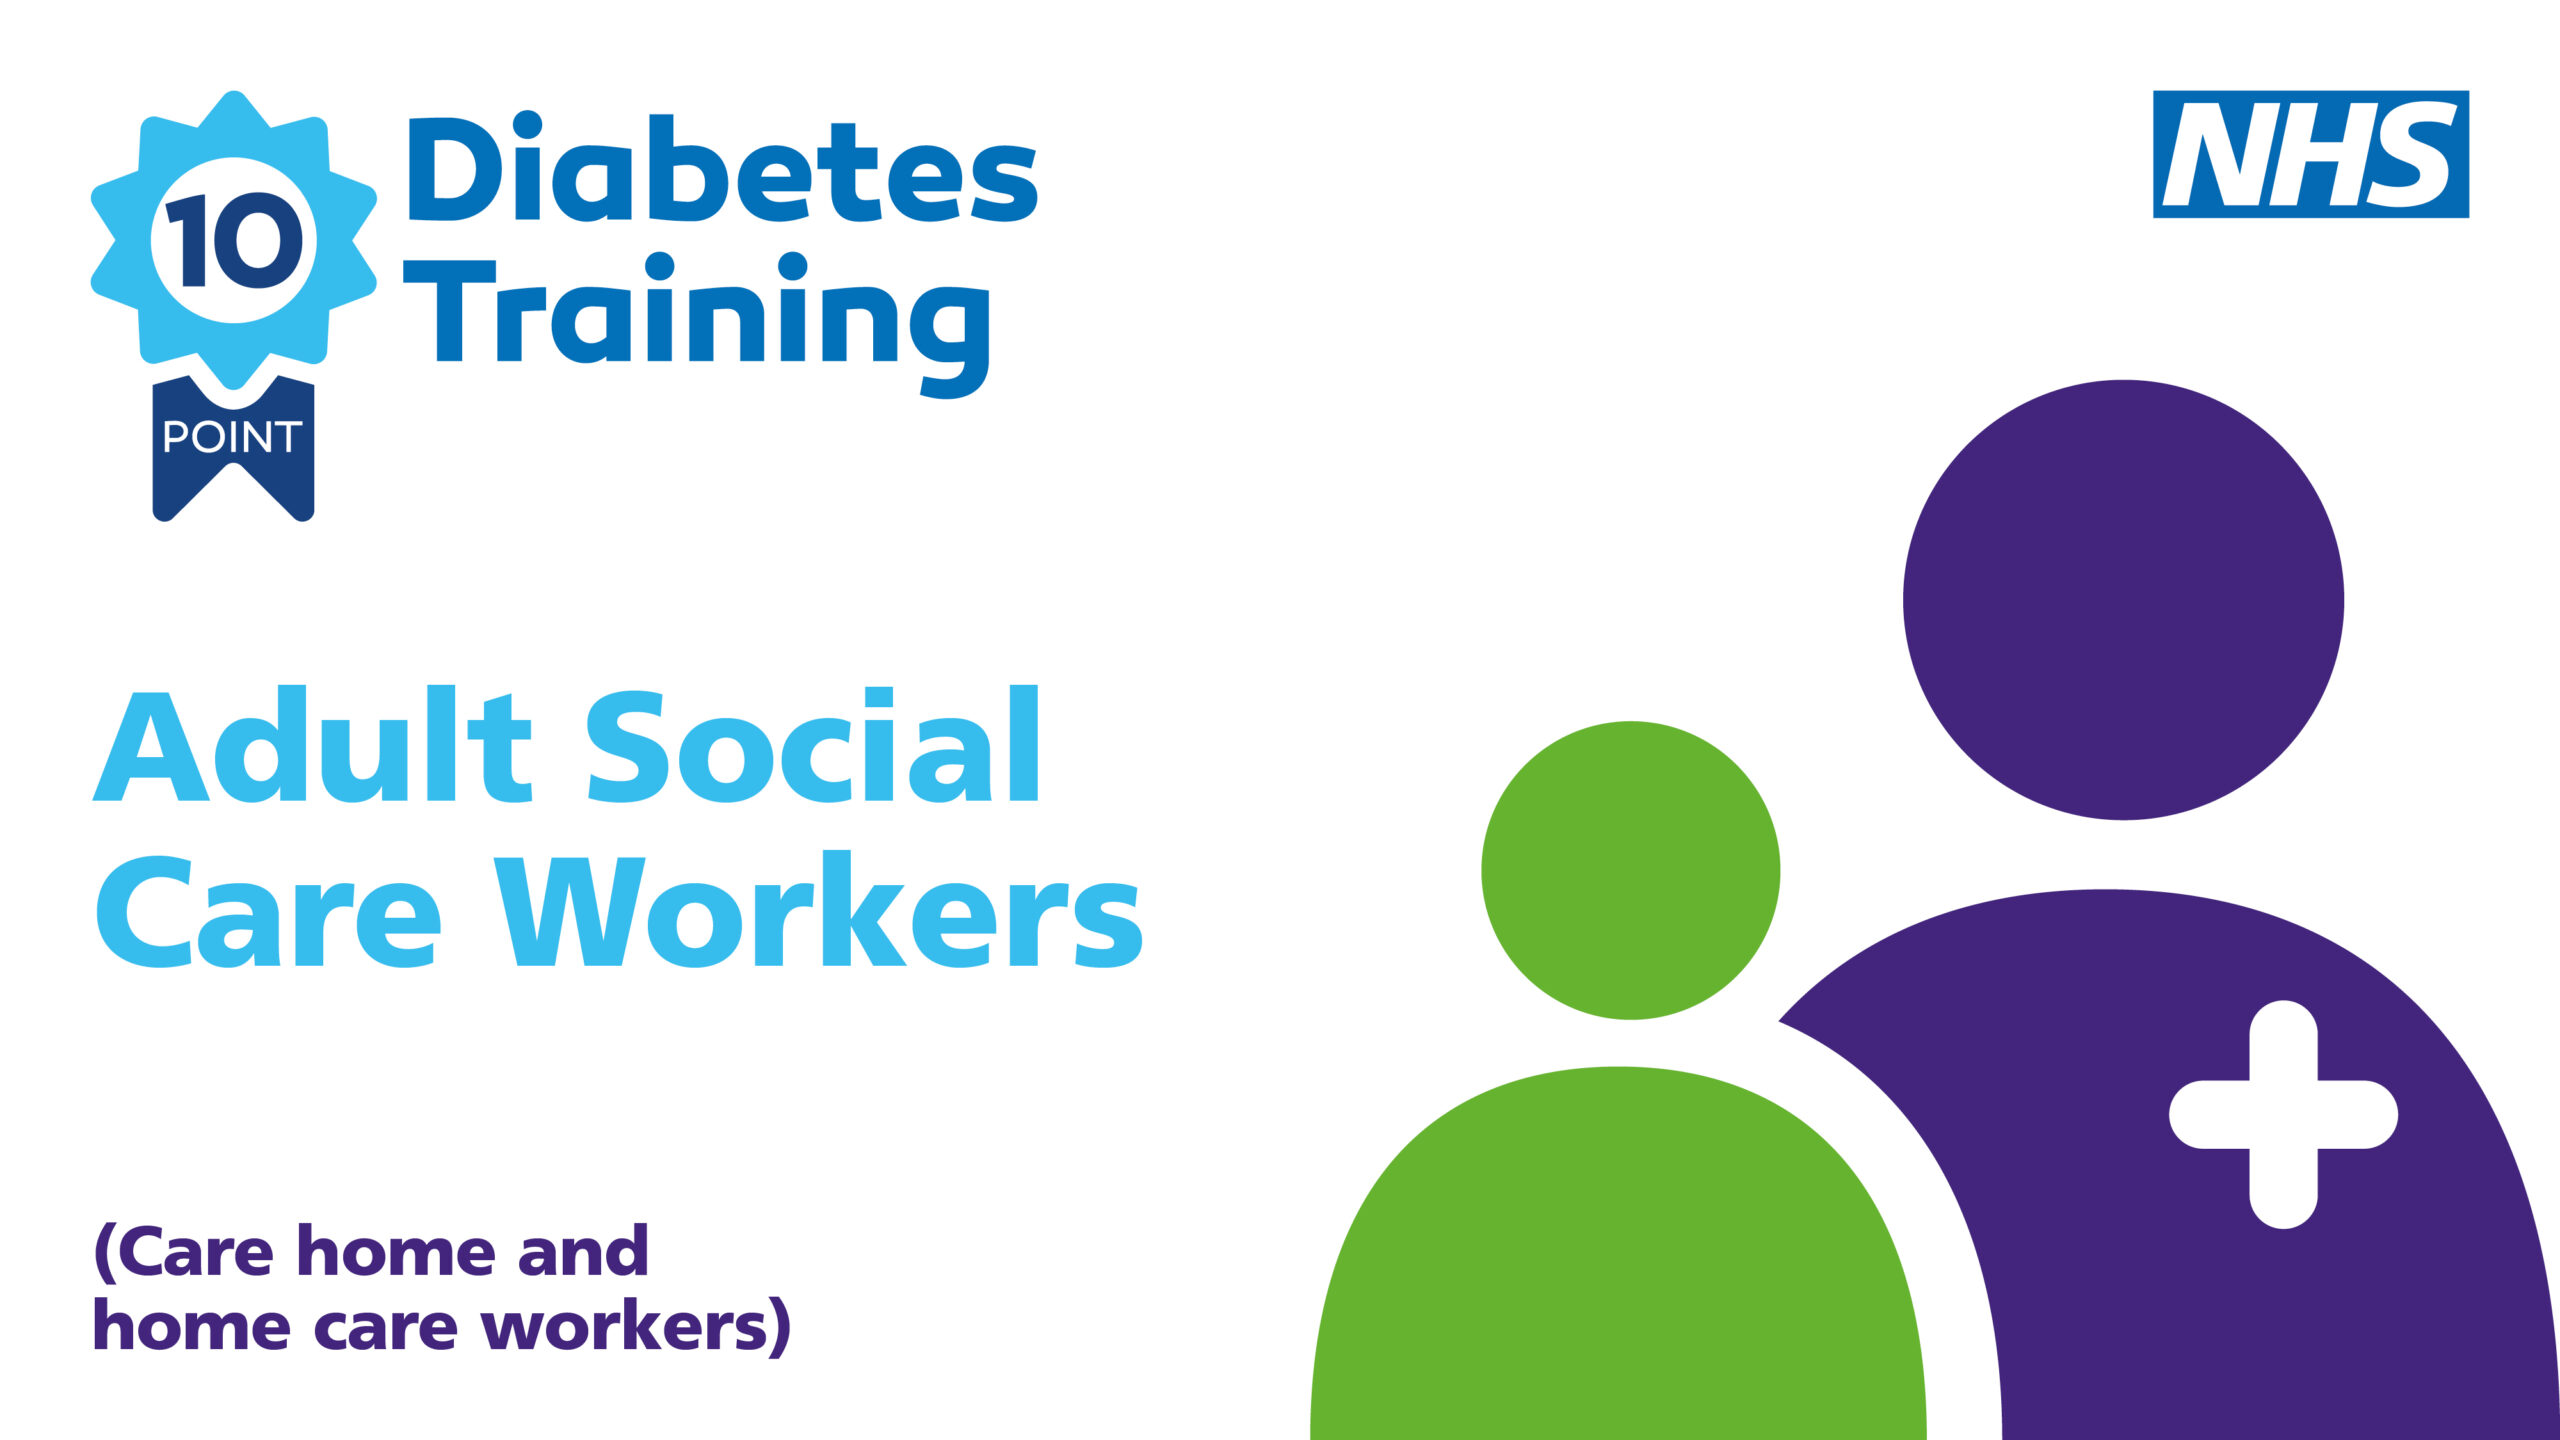 Diabetes 10 Point Training for Adult Social Care Workers  (Care Home and Home Care Workers)